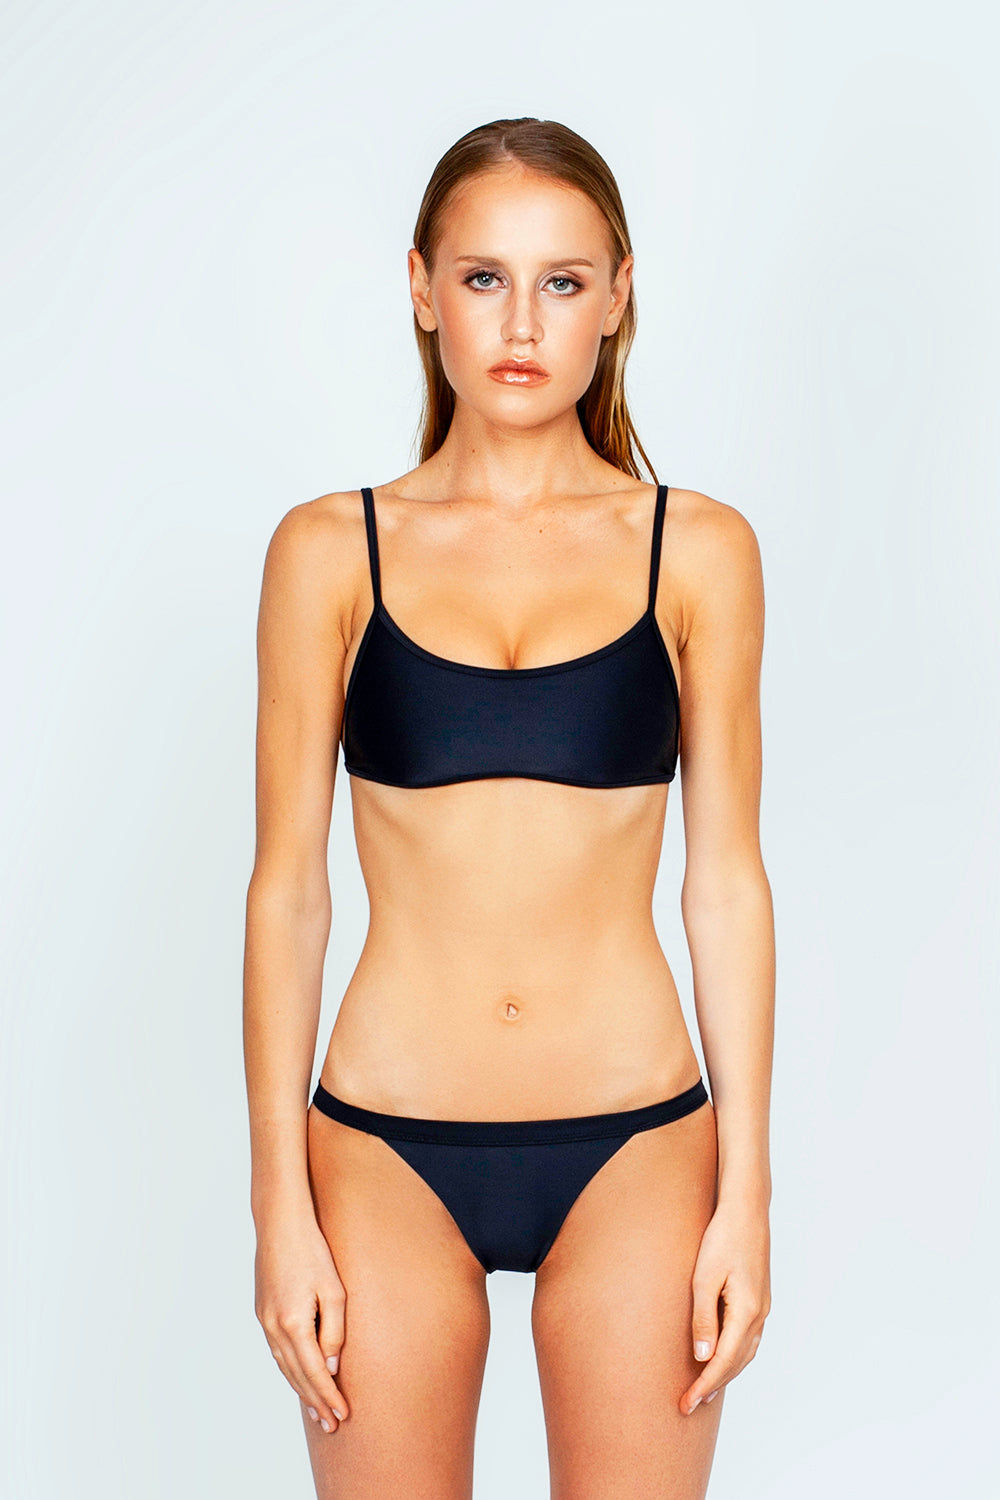 THE ONES WHO Beverly Hipster Bikini Bottom - Black Bikini Bottom | Black| The Ones Who Beverly Hipster Bikini Bottom - Black Hipster  Thin side straps Cheeky coverage Made in LA  Fabric: 80% Nylon 20% Elastane  Front View